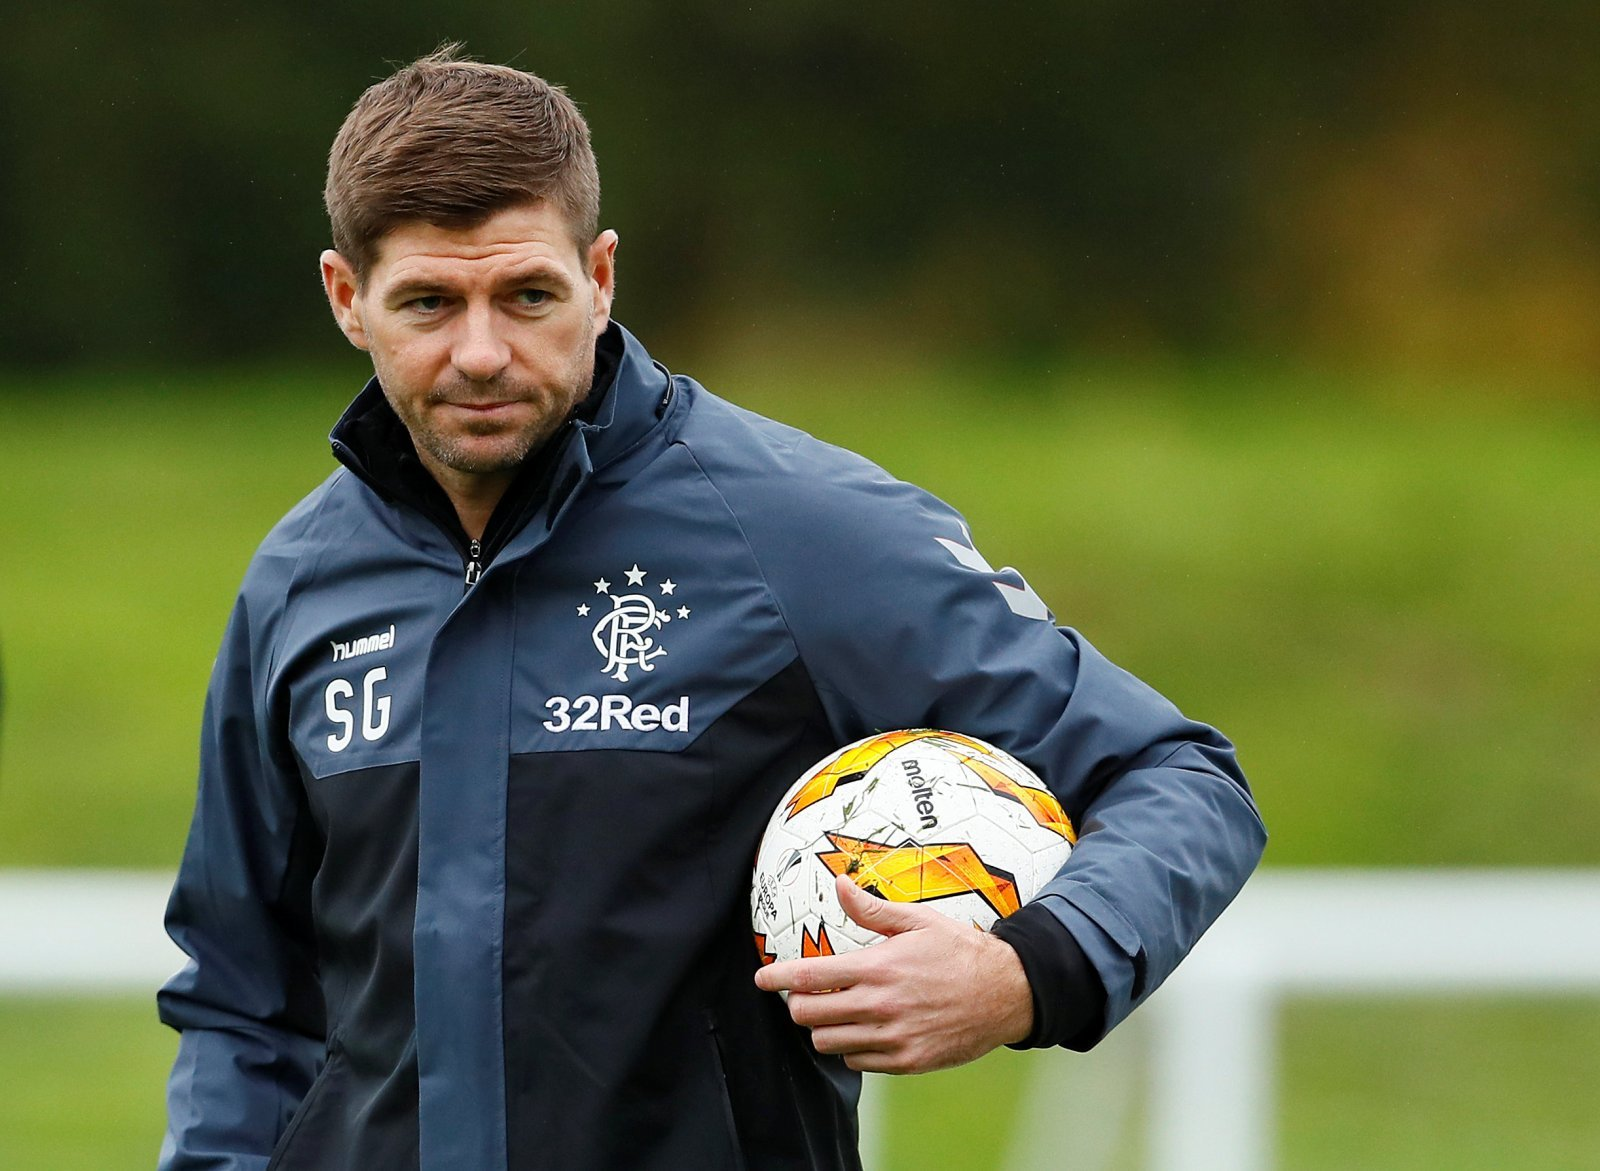 Steven Gerrard speaks about discipline issue at Rangers